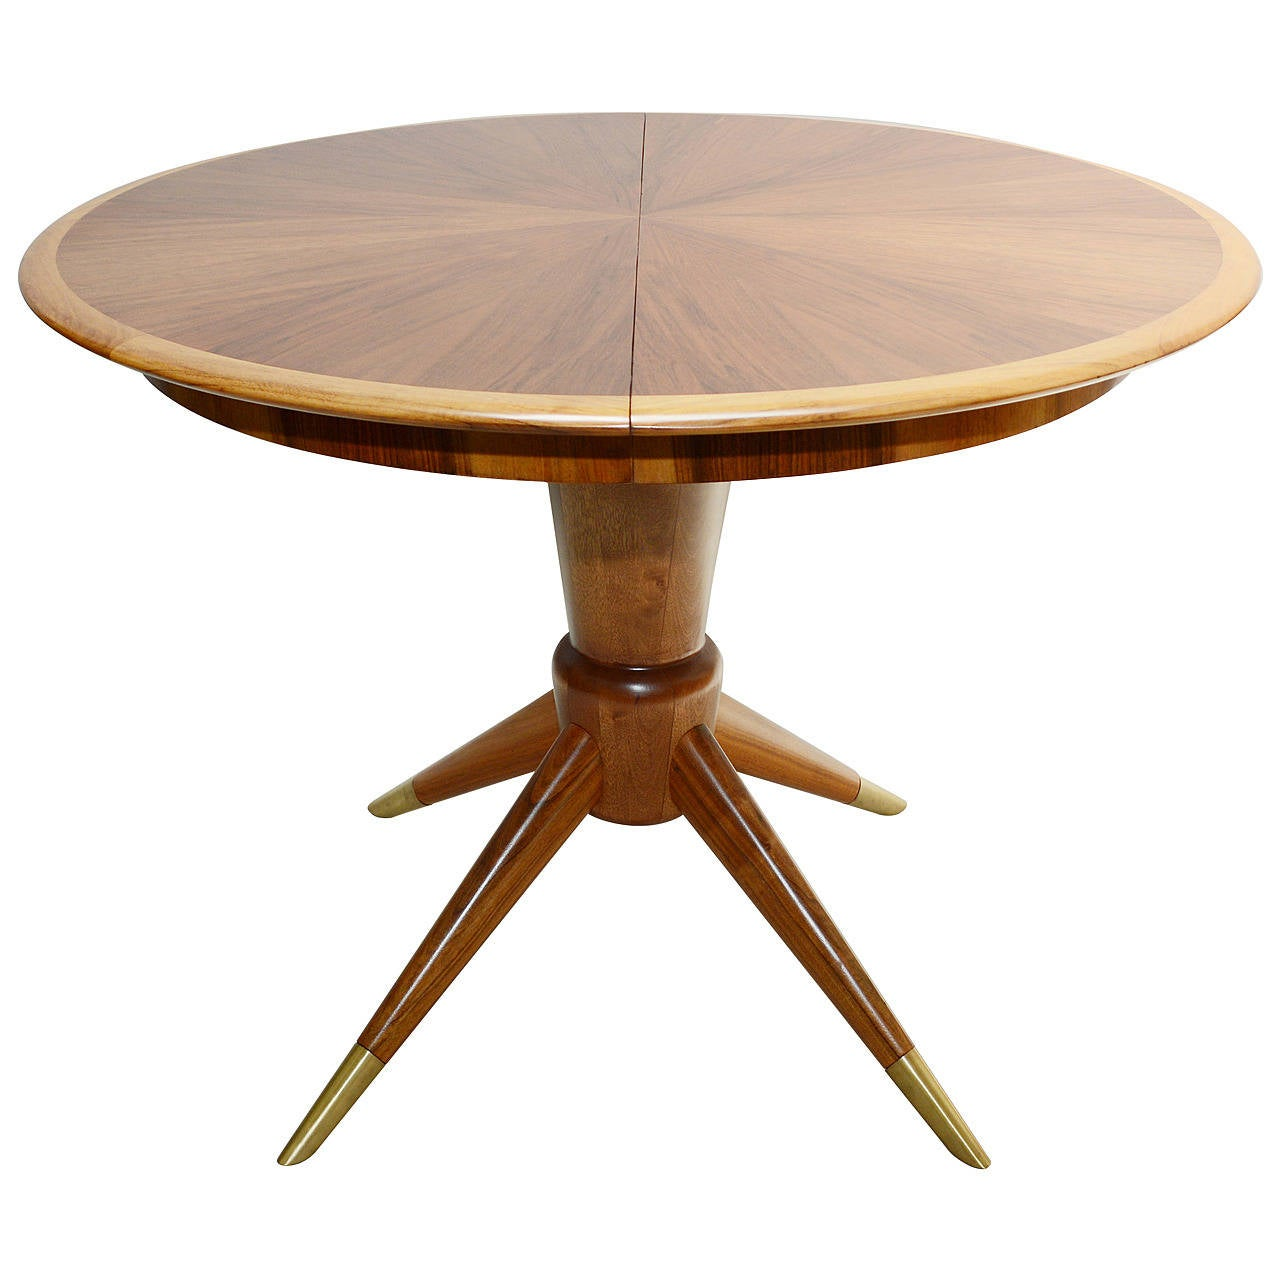 Italian round pedestal dining table at 1stdibs for Italian dining table